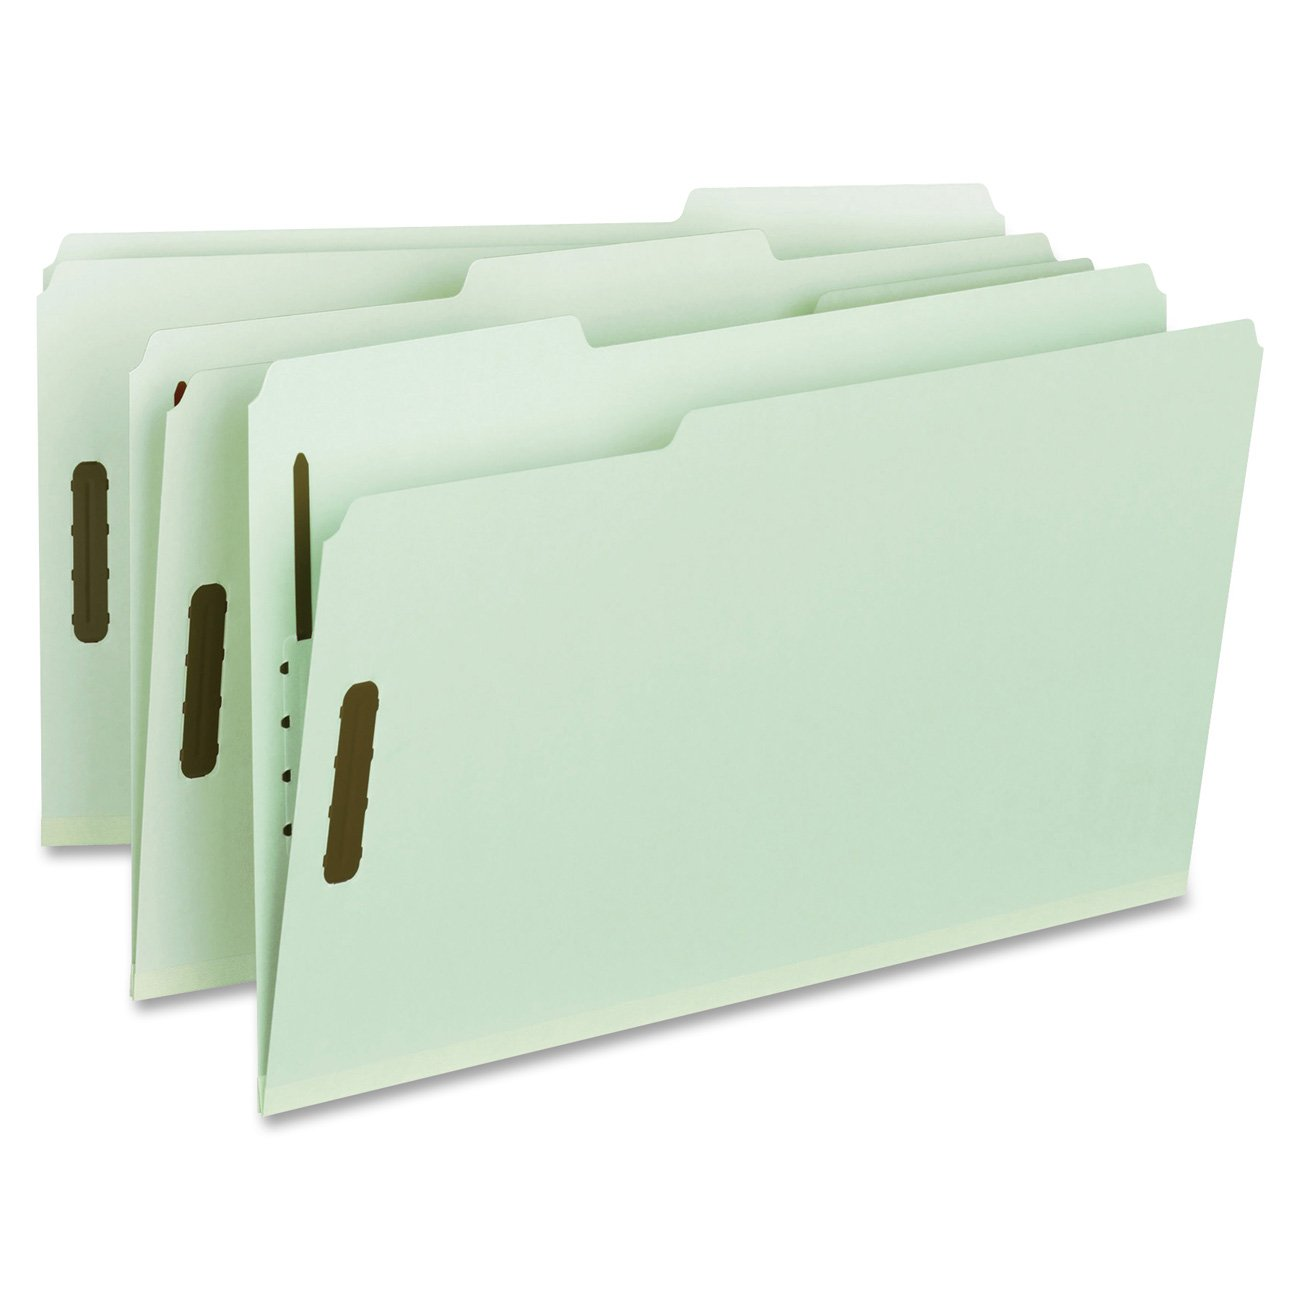 Smead 100% Recycled Pressboard Fastener File Folder, 2 Fasteners, 1/3-Cut Tab, 1'' Expansion, Legal Size, Gray/Green, 25 per Box (20003) by Smead